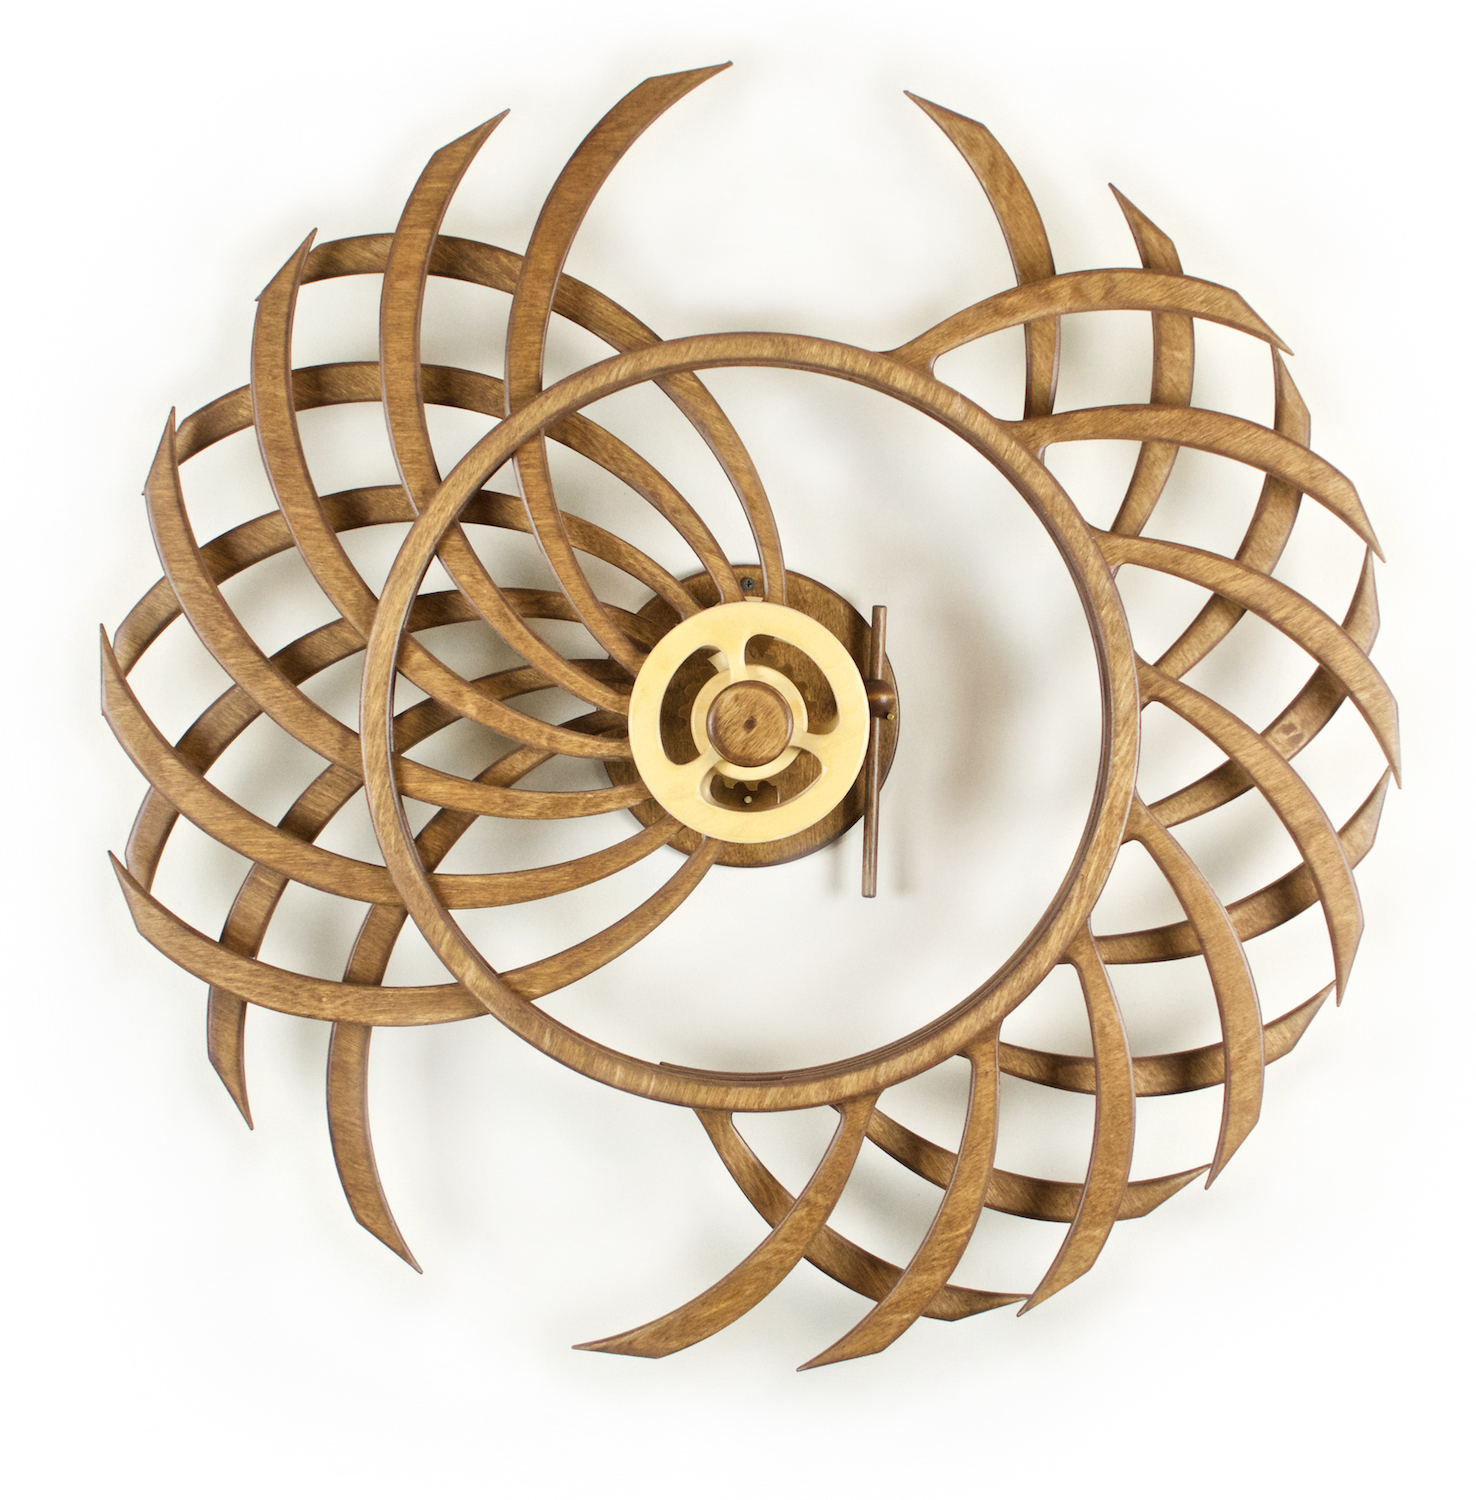 Spring-driven, Kinetic Wooden Wall sculpture by David C. Roy of WoodThatWorks.com. Duality runs for 8 hours per winding an is in an edition of 95. copyright 2017